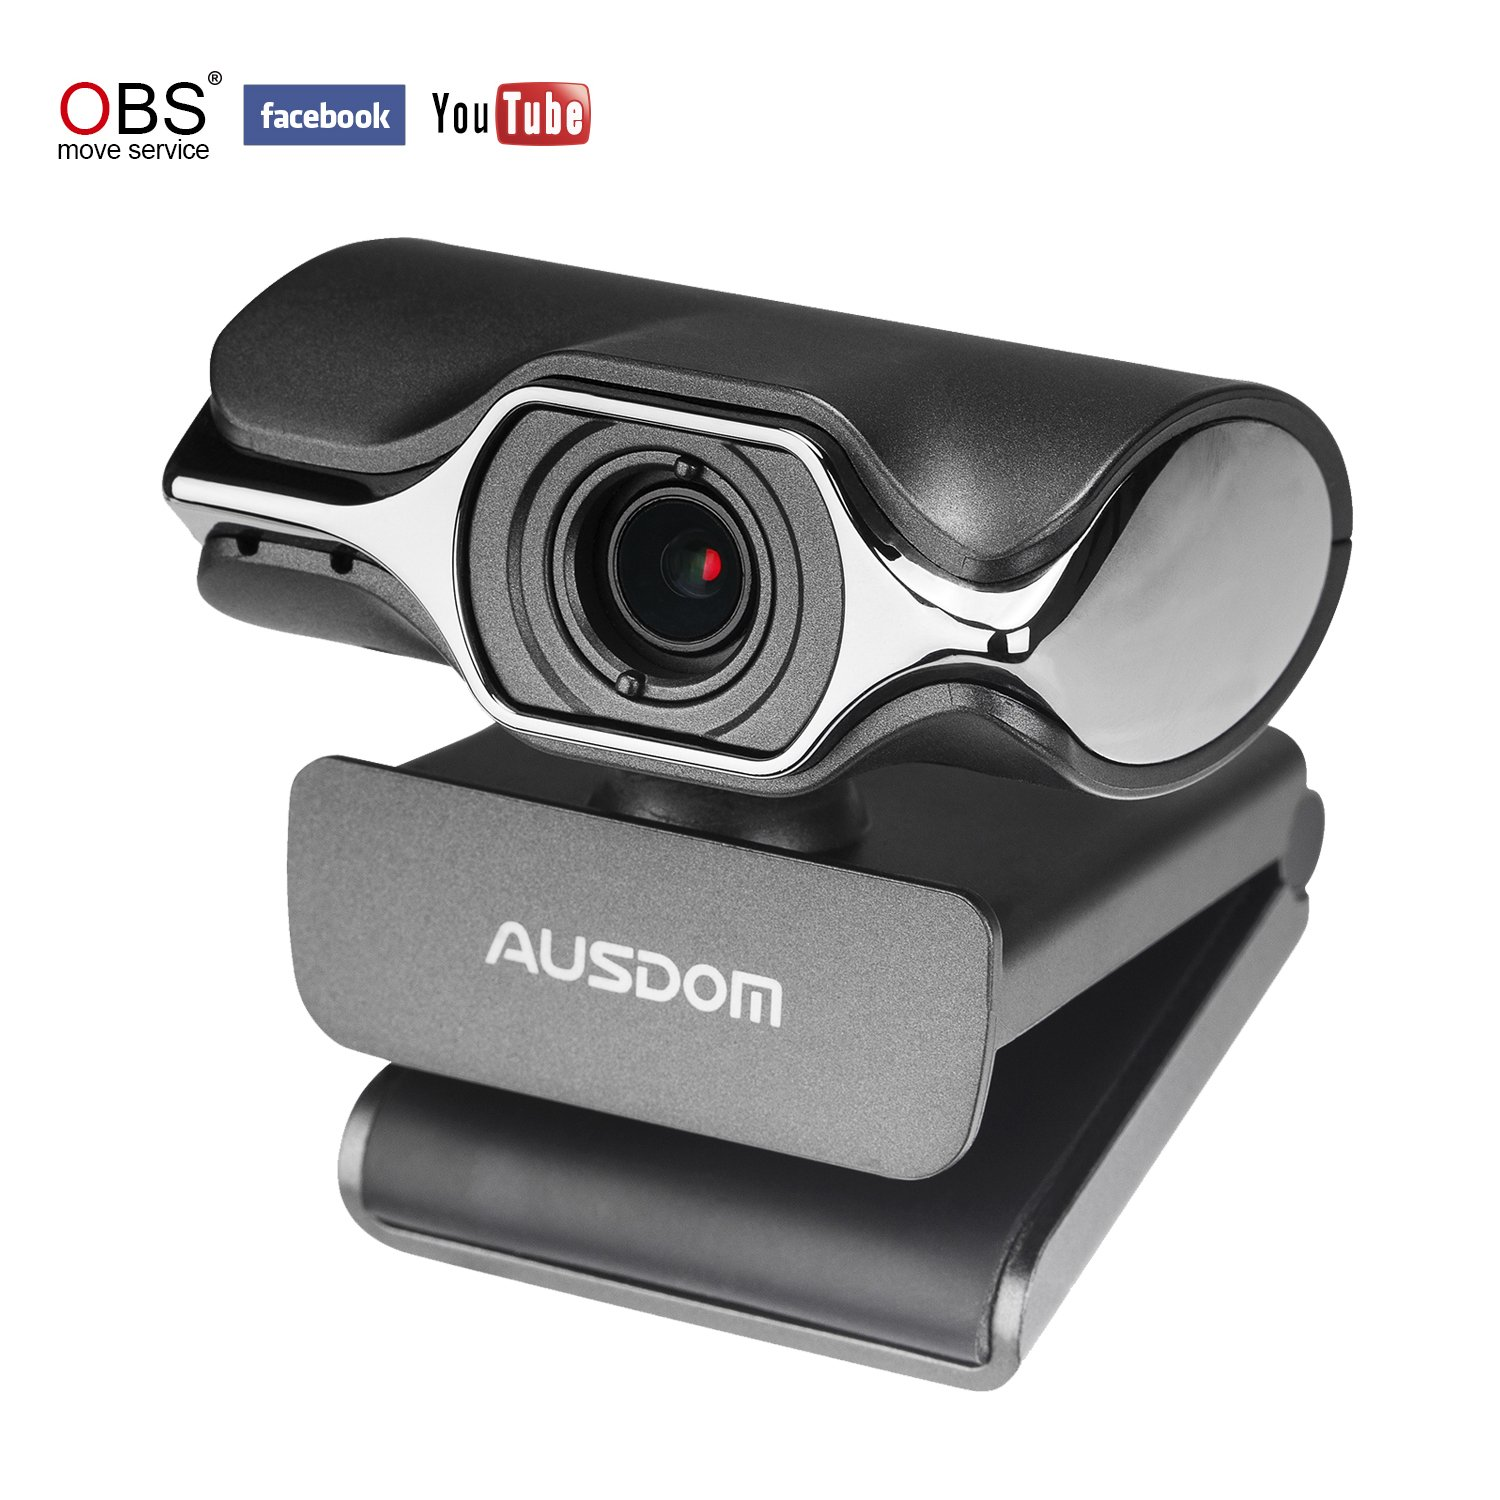 Stream Webcam Full 1080p HD Camera for Computer Web Camera with Built-in Noise Reduction Microphone, PC or Laptop Camera for OBS Twitch Skype YouTube